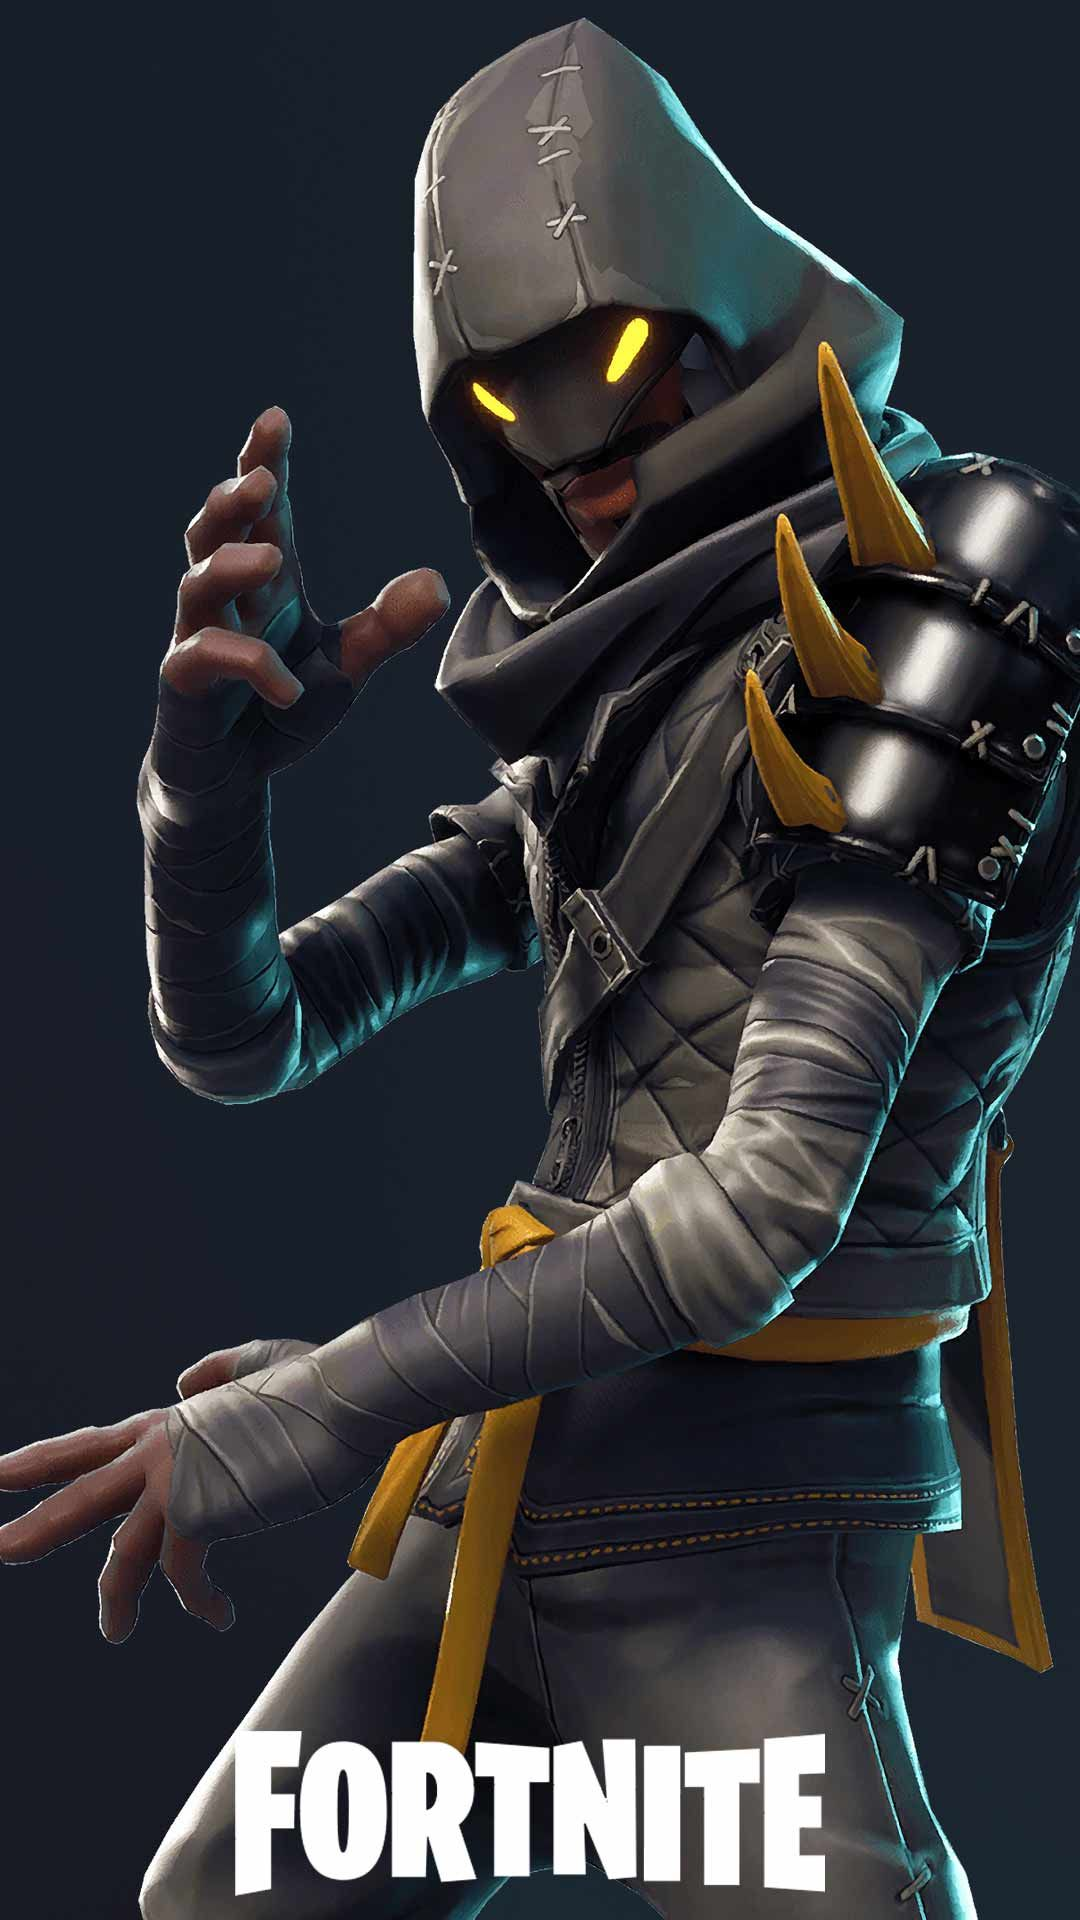 Fortnite is the popular coop sandbox action survival game